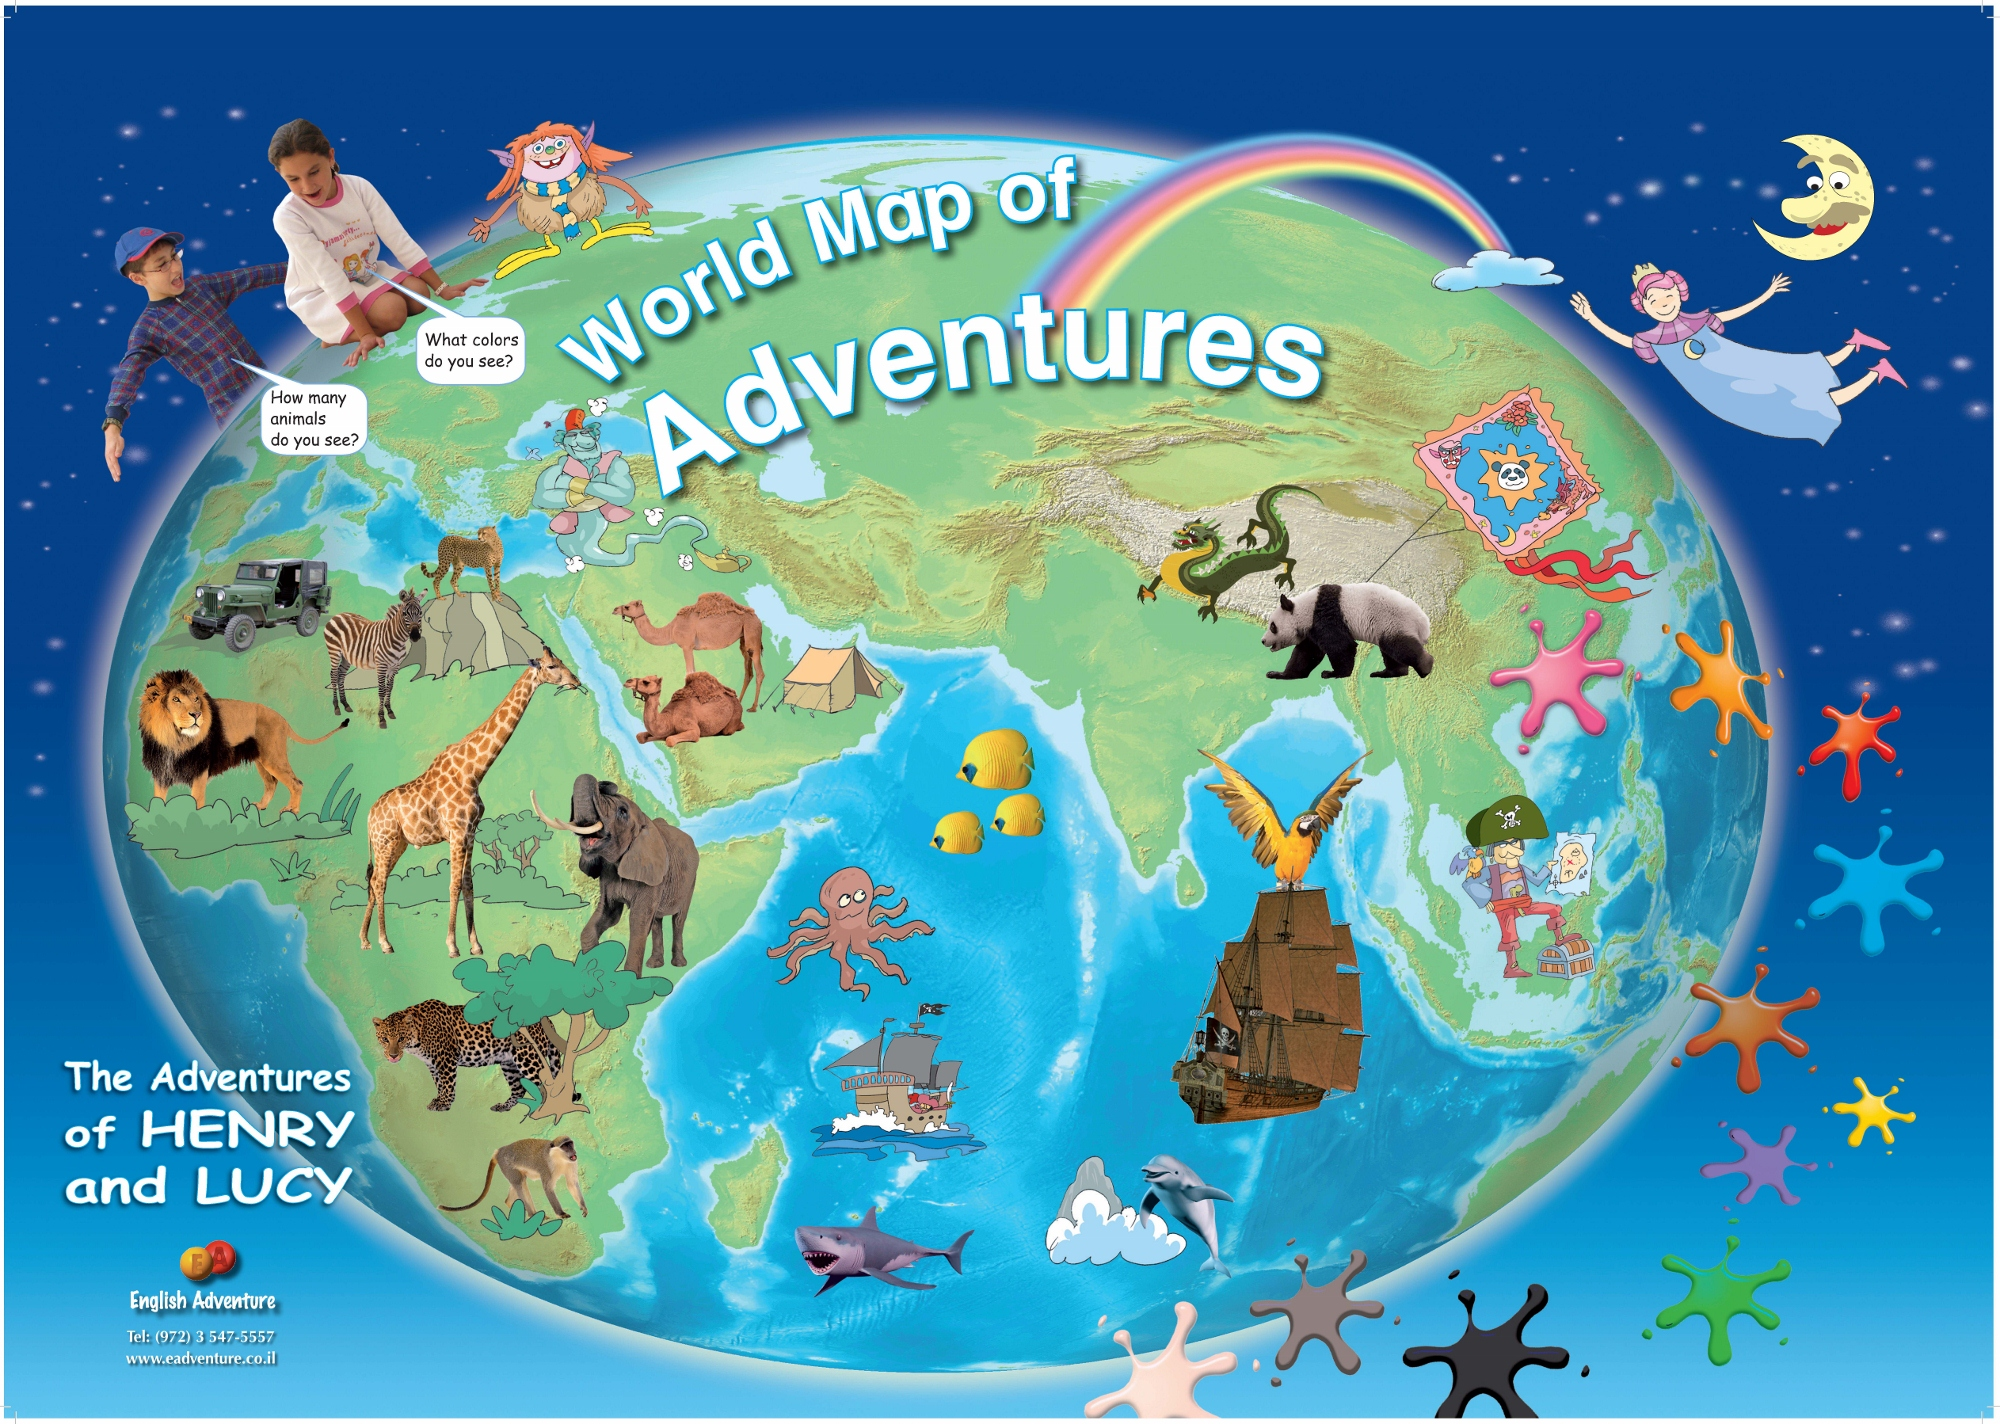 English Adventure - Student's Zone: Classroom posters